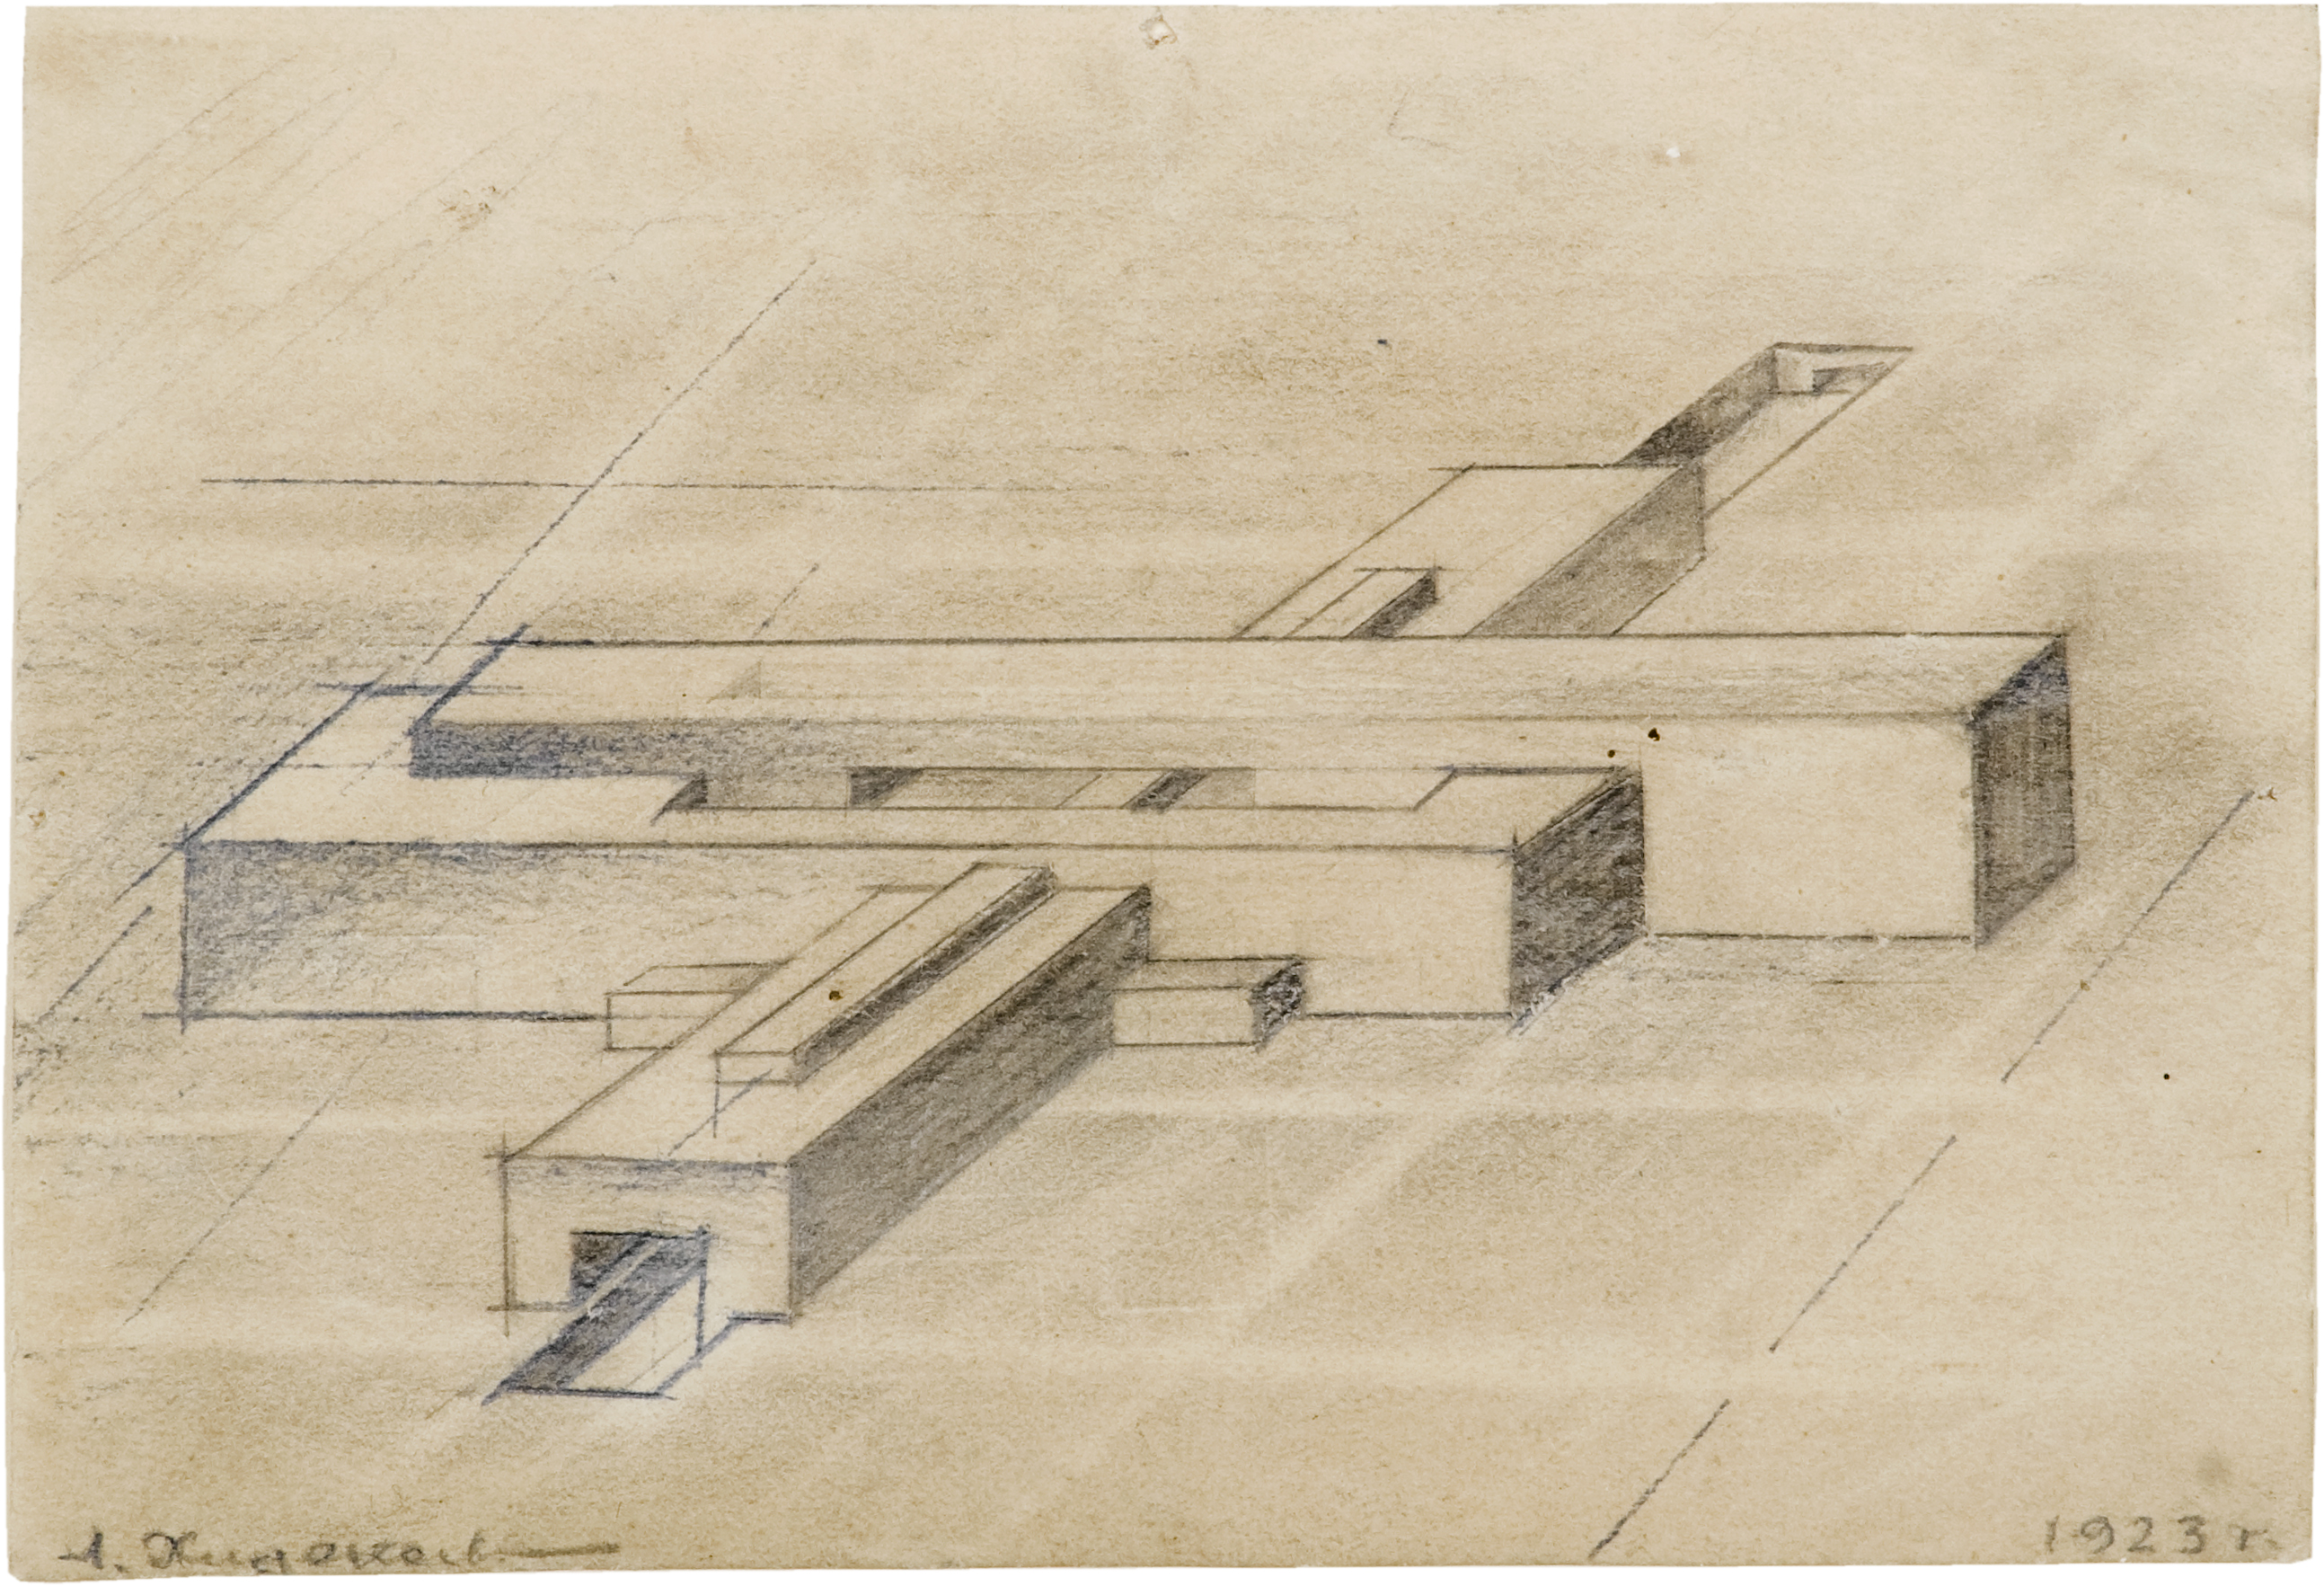 Design_for_Horizontal_Architecton_–_Aero-club_Axonometry1923